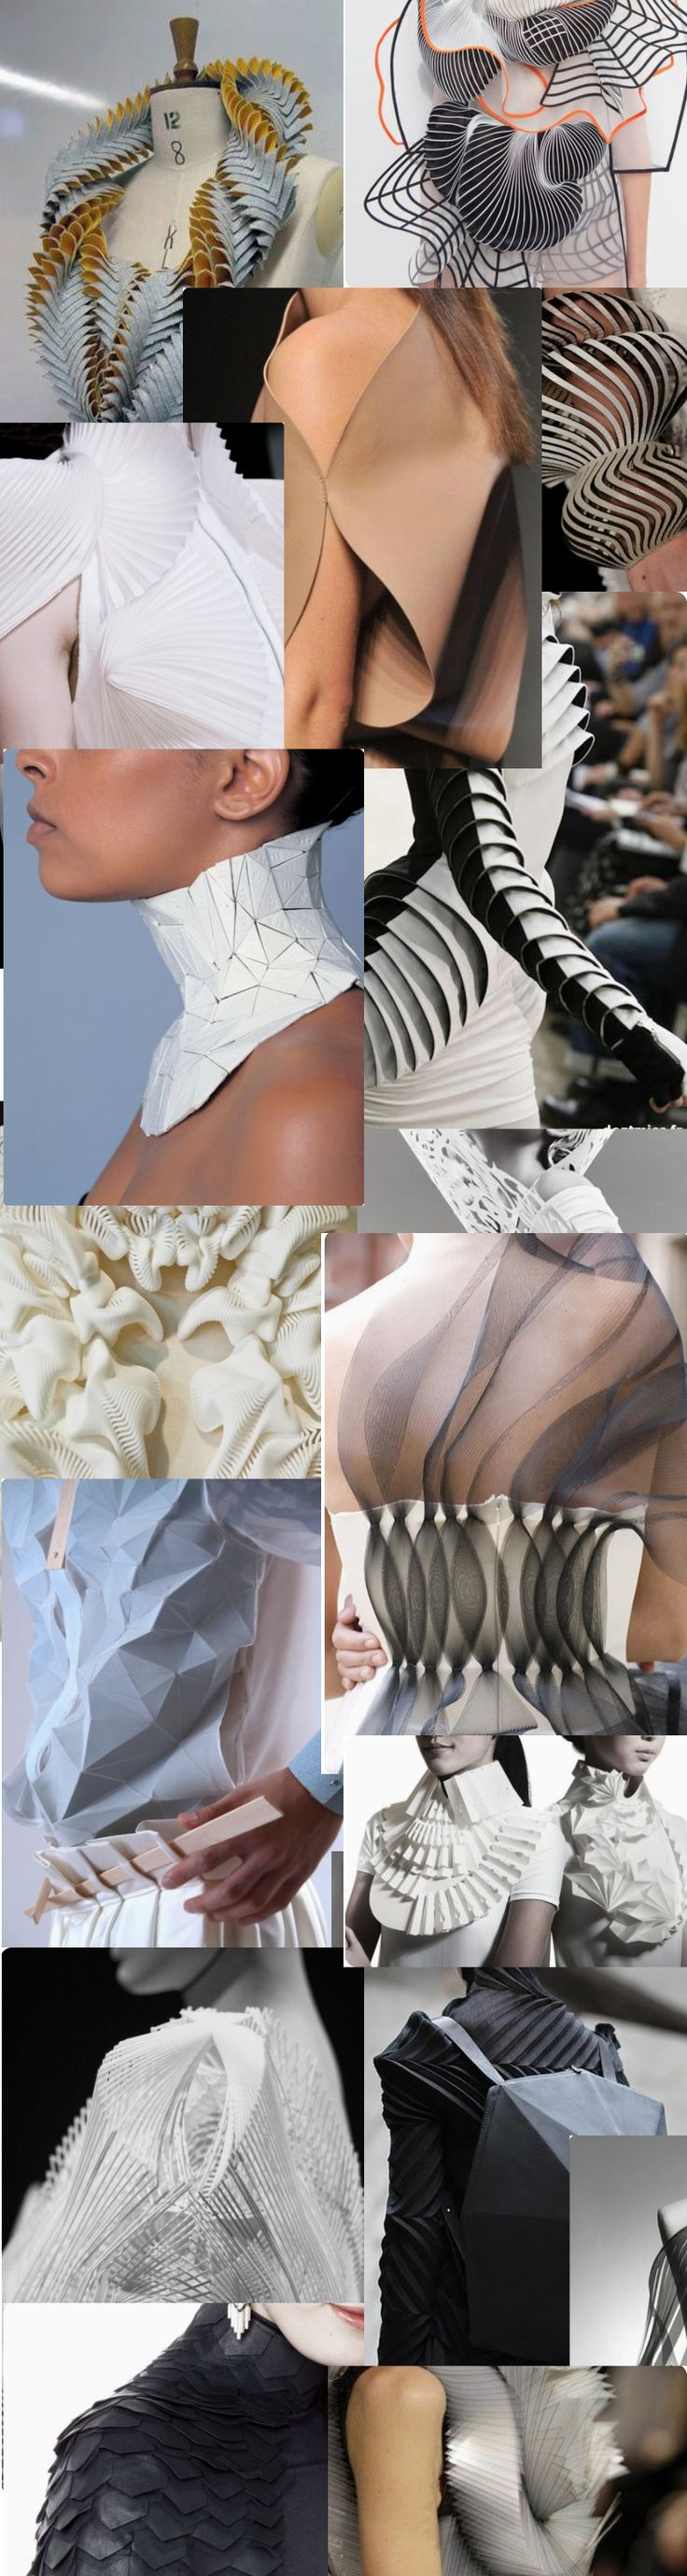 Fashion Forecasting - Moodboard | Sculptural Wearble Tech, futuristic tends, 3D Printed clothing and accessories style for women